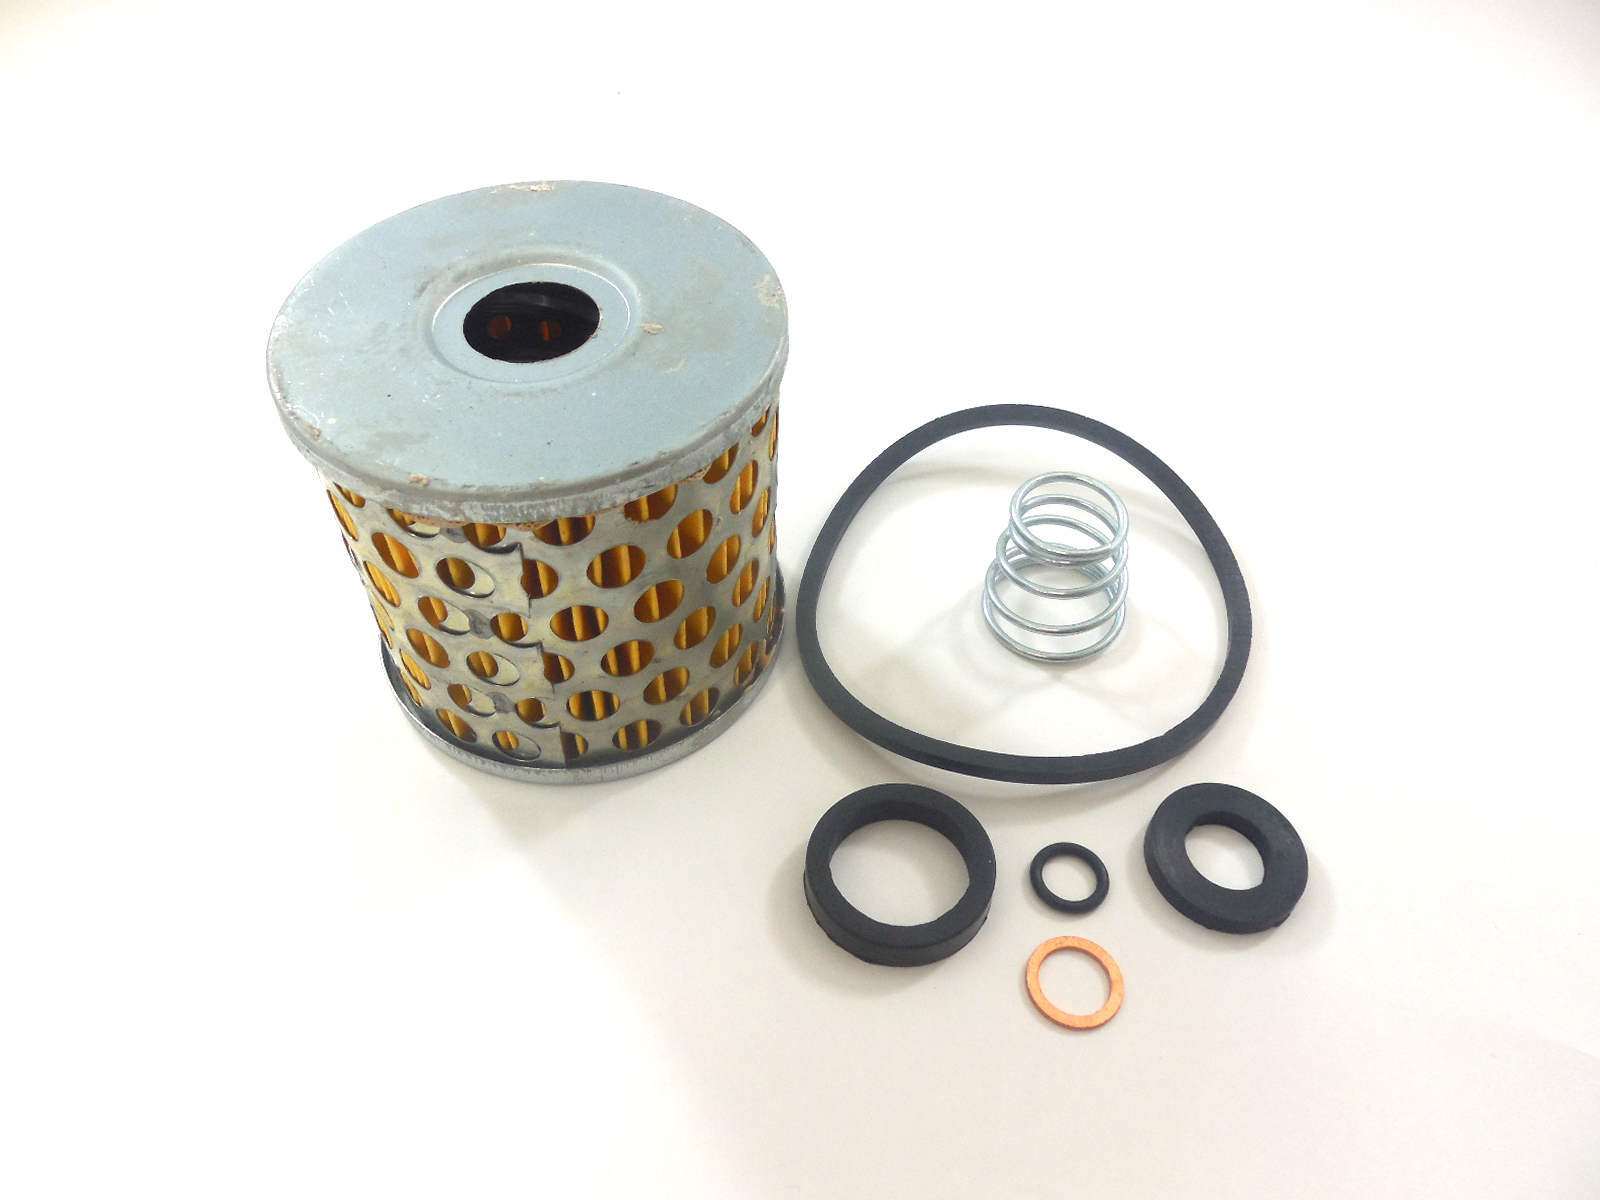 Racing Power Company R4296 Fuel Filter Element, 10 Micron, Paper Element, O-Rings, RPC Large Canister Filters, Kit